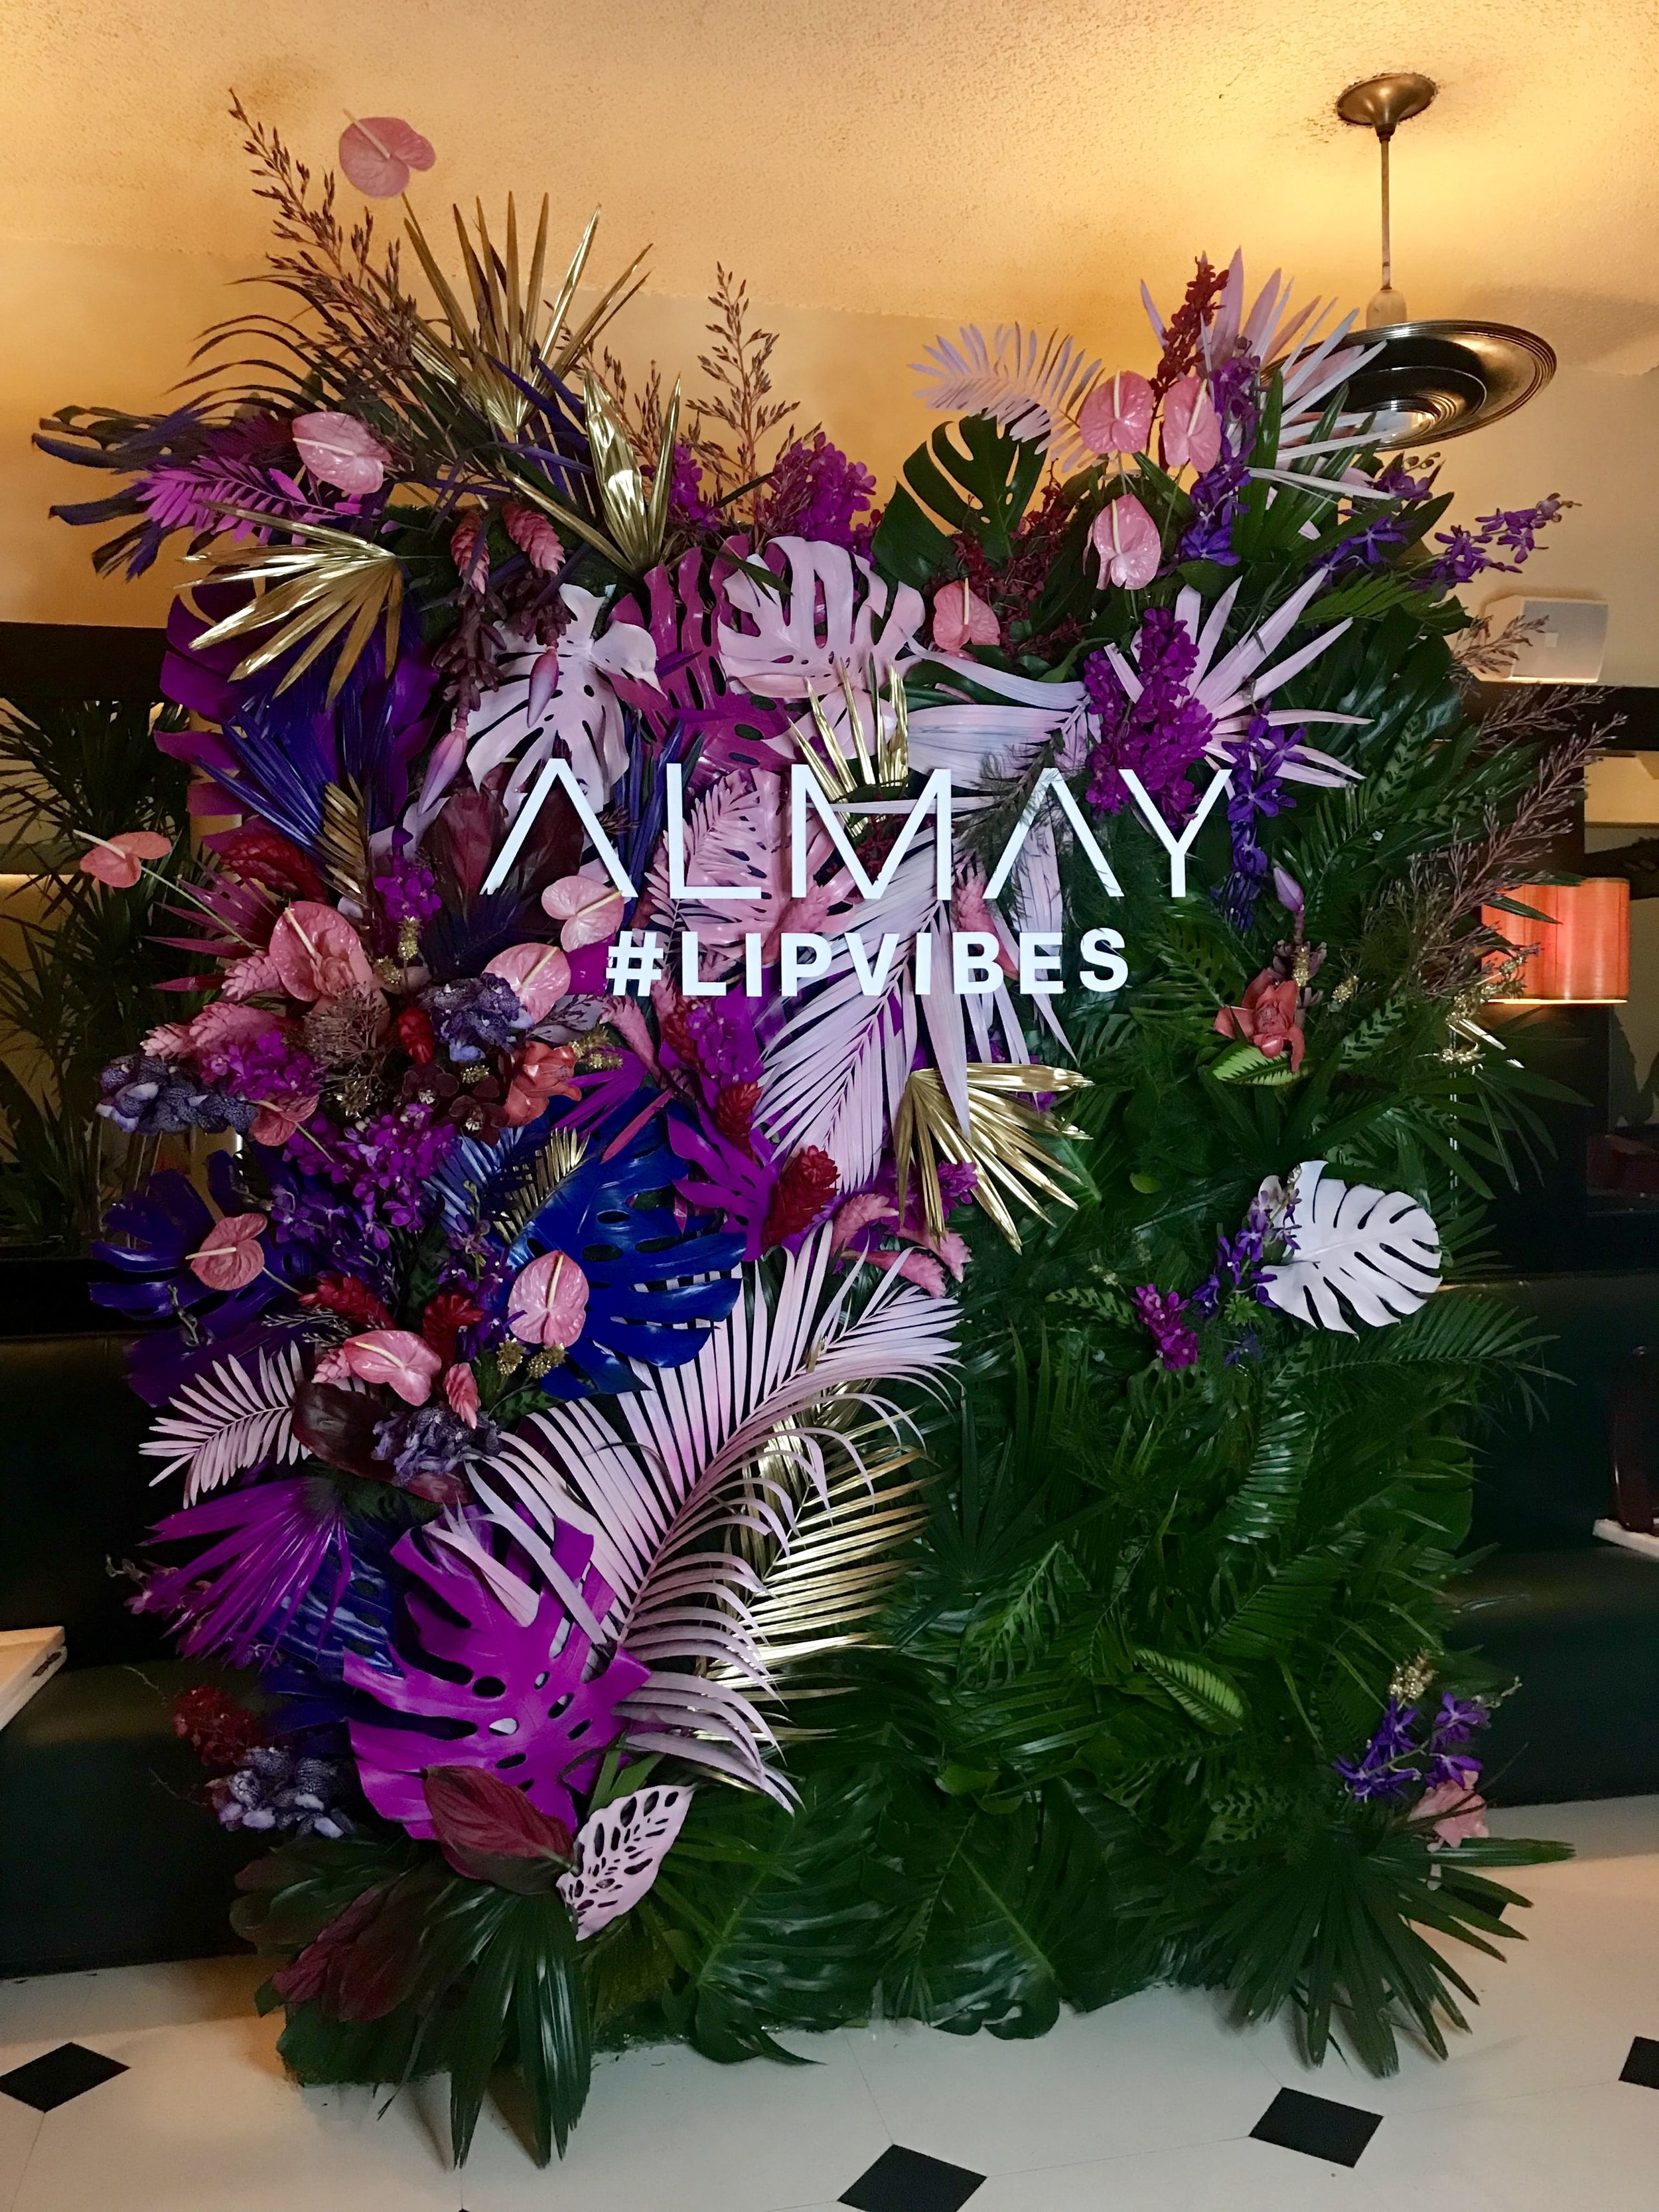 Almay Lip Vibes Launch Flower Wall - B Floral